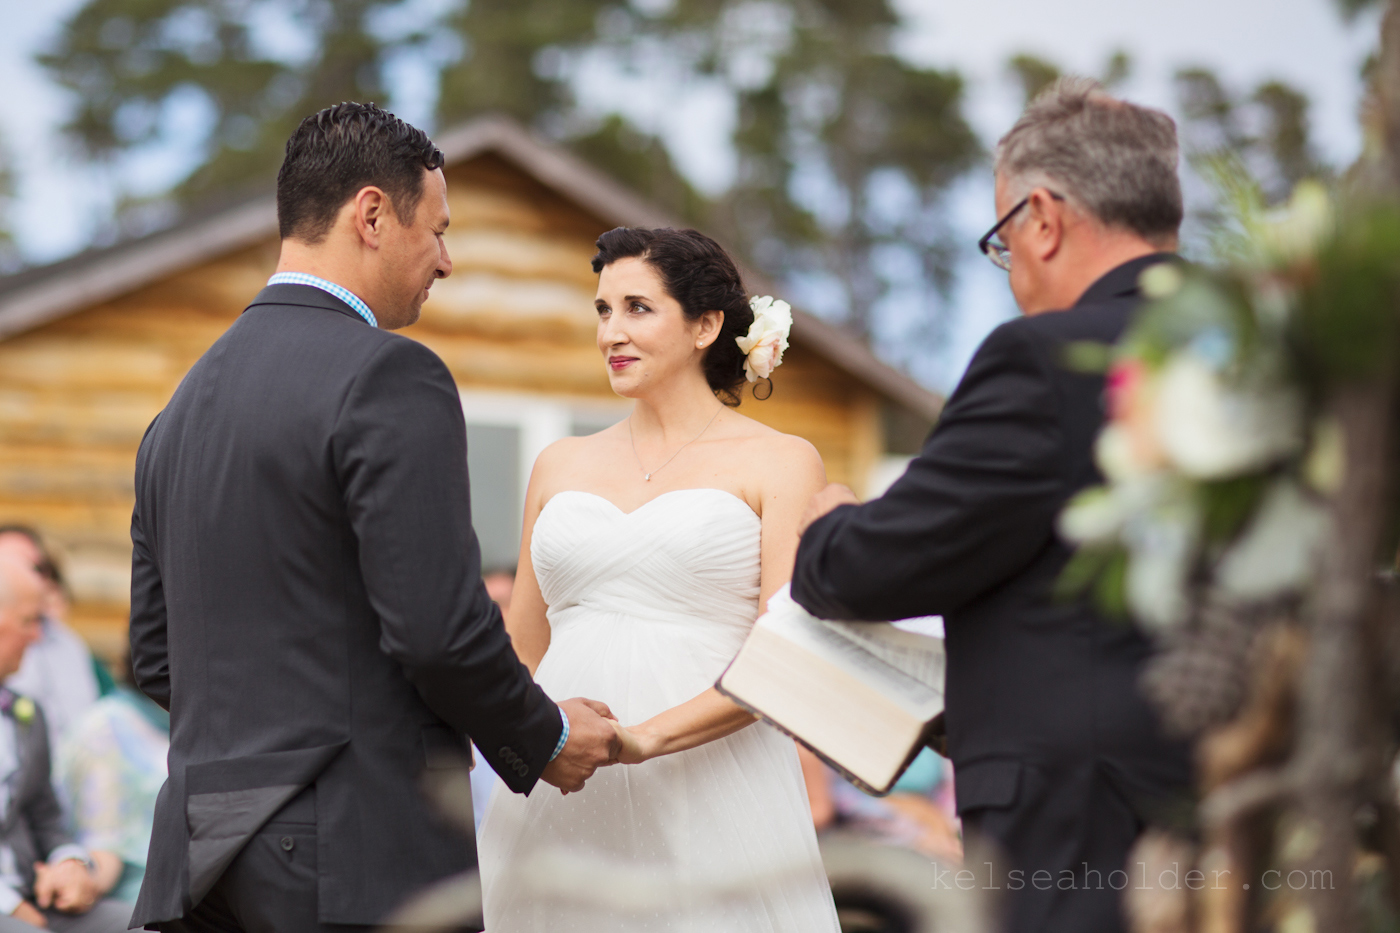 kelsea_holder_eco_outdoor_california_wedding031